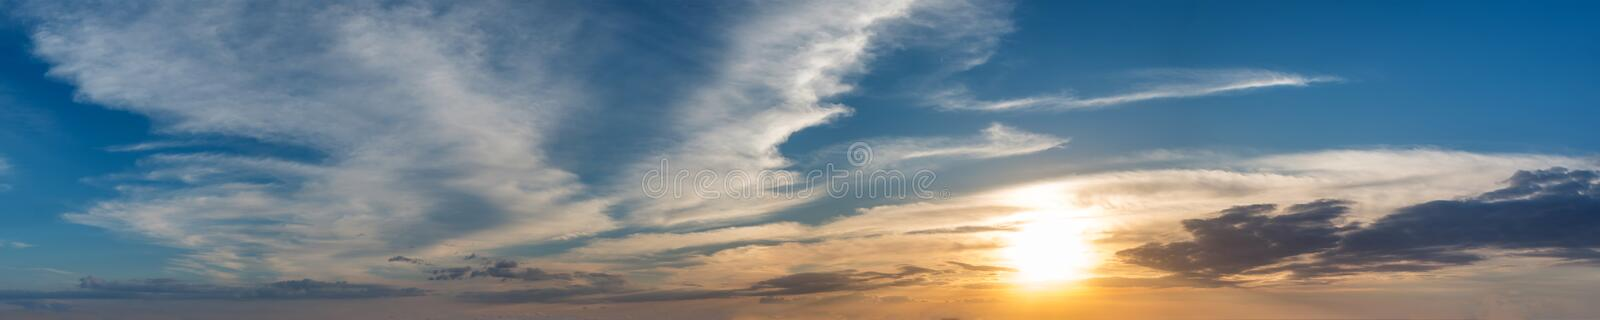 Vibrant color panoramic sun rise and sun set sky with cloud on a cloudy day. Beautiful cirrus cloud. Panorama high resolution photograph stock photo